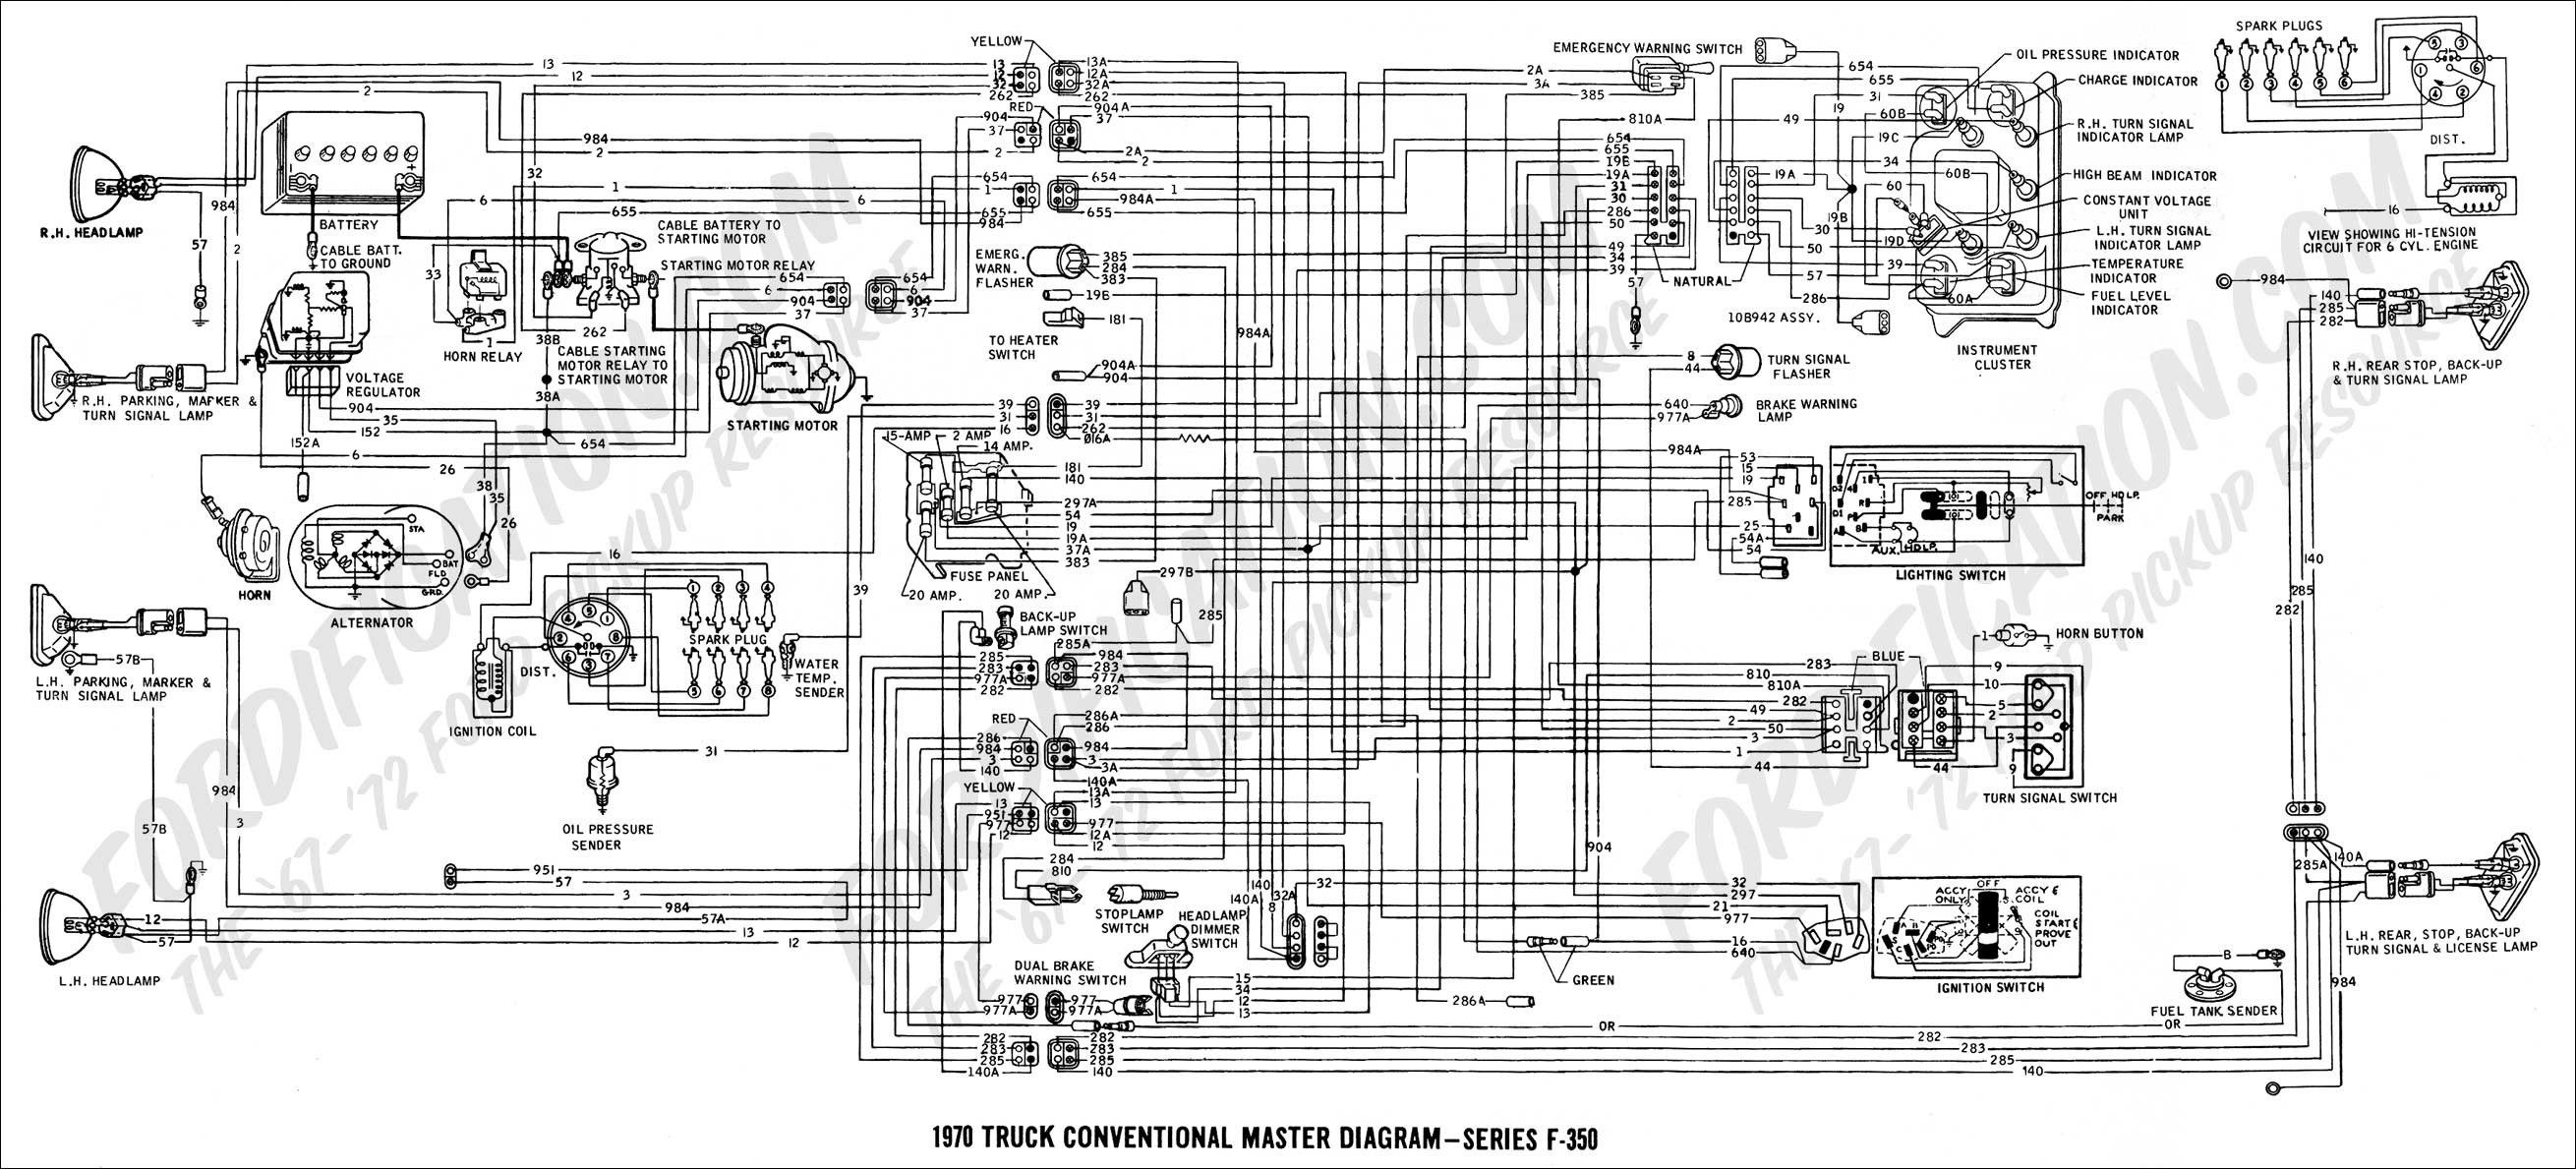 Car Electrical Wiring Diagram Diagram as Well ford F 350 Wiring Diagram In Addition ford Headlight Of Car Electrical Wiring Diagram